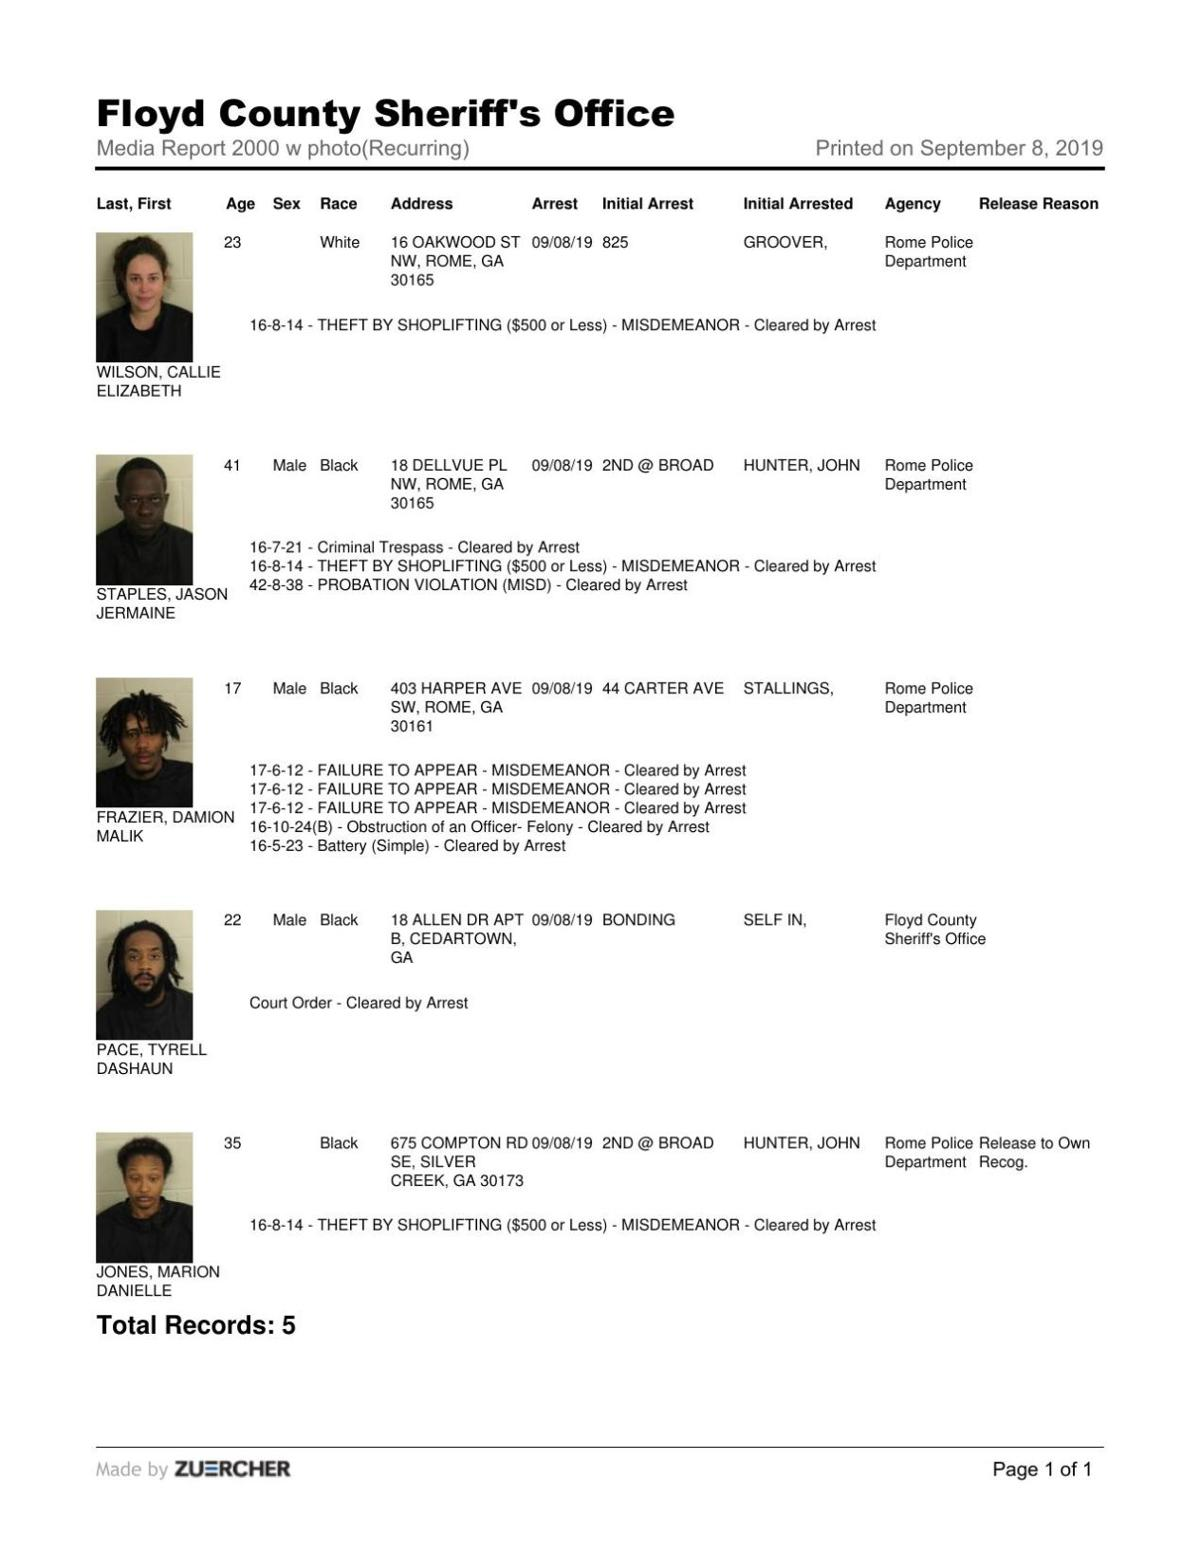 Floyd County Jail report for Sunday, Sept. 8 - 8 p.m.